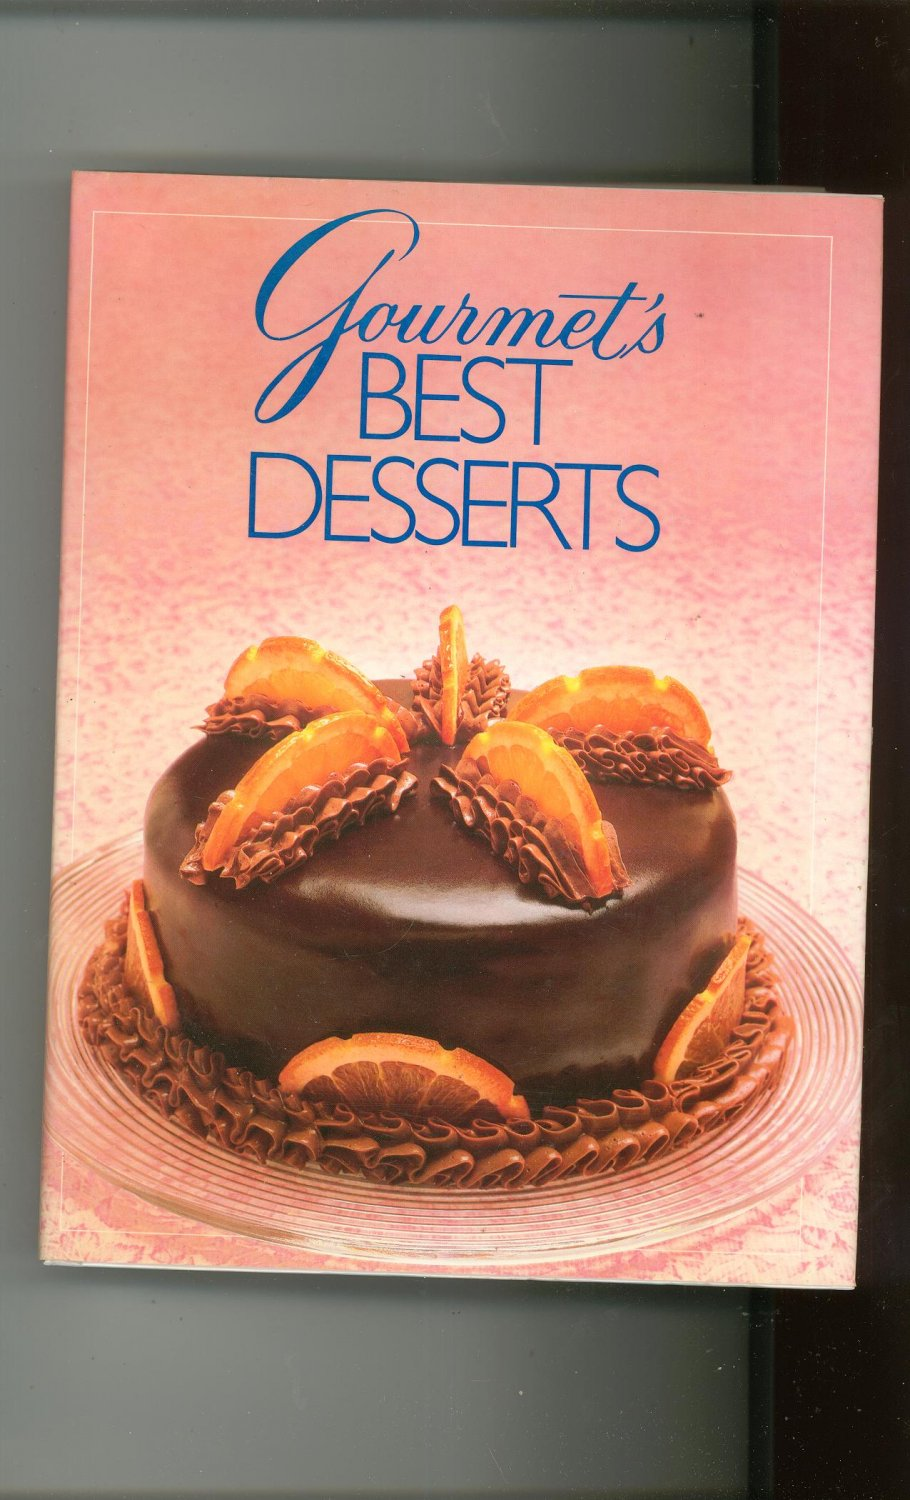 Gourmet's Best Desserts Cookbook 0394564227 Hard Cover